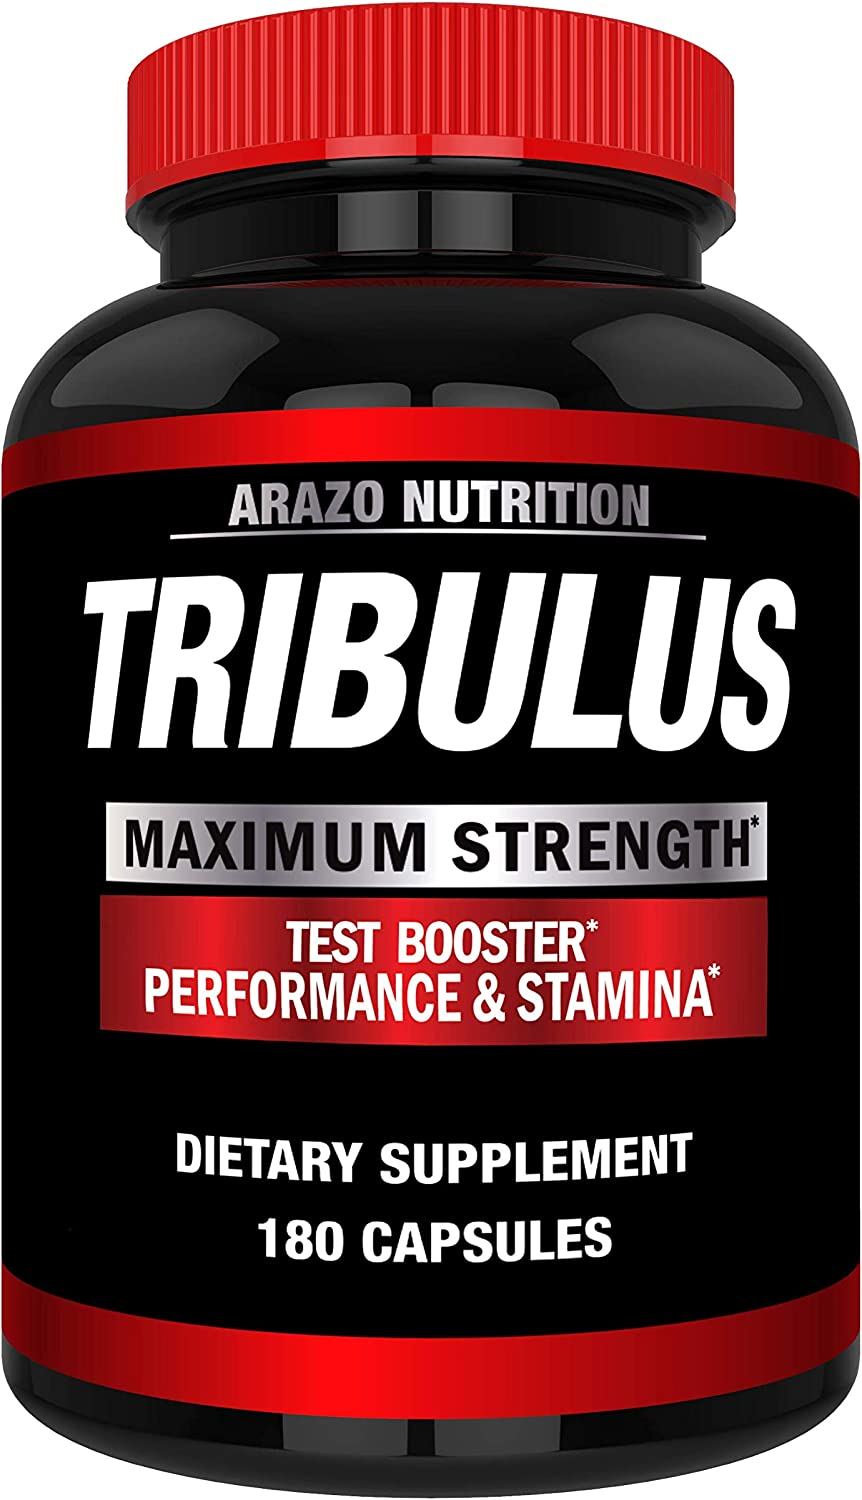 Tribulus Terrestris 1500MG Extract Powder - Testosterone Booster with Estrogen Blocker - Arazo Nutrition USA - 180 Capsules: Health & Personal Care